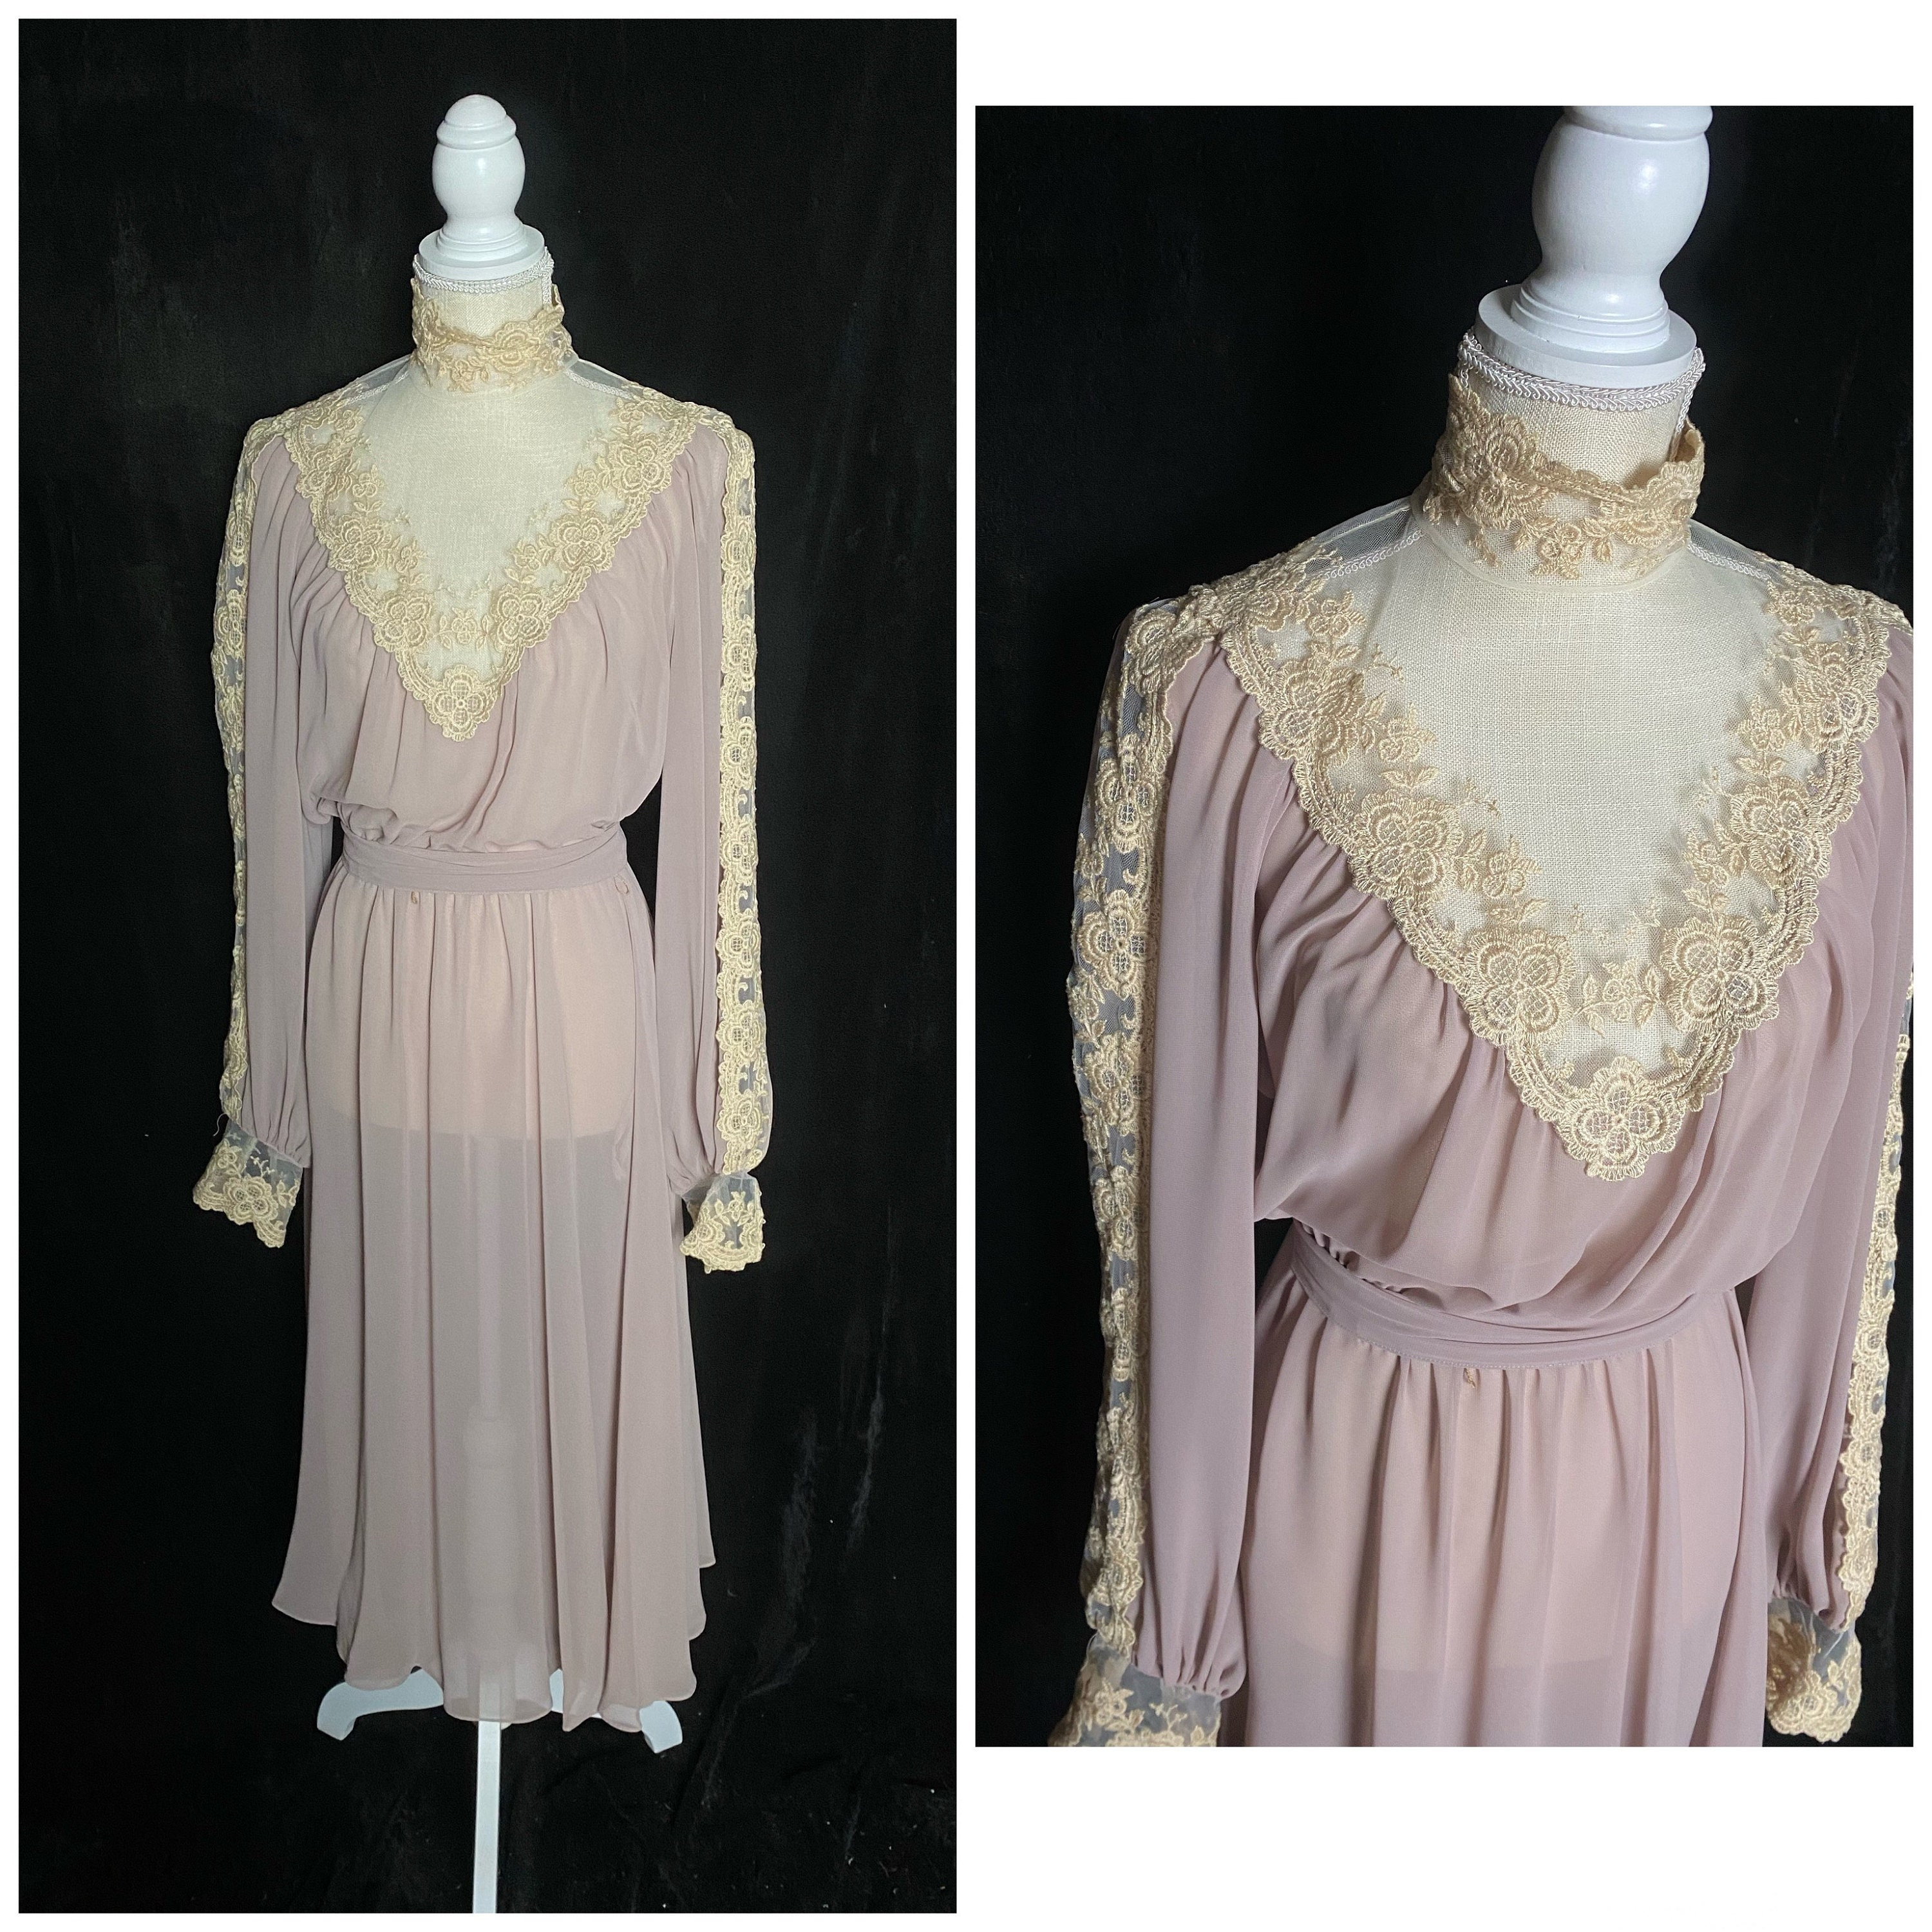 80s Dresses | Casual to Party Dresses Vintage 1980s Sheer Purple Long Sleeve Bridesmaid Dress With High Lace Neckline, Size Small $0.00 AT vintagedancer.com